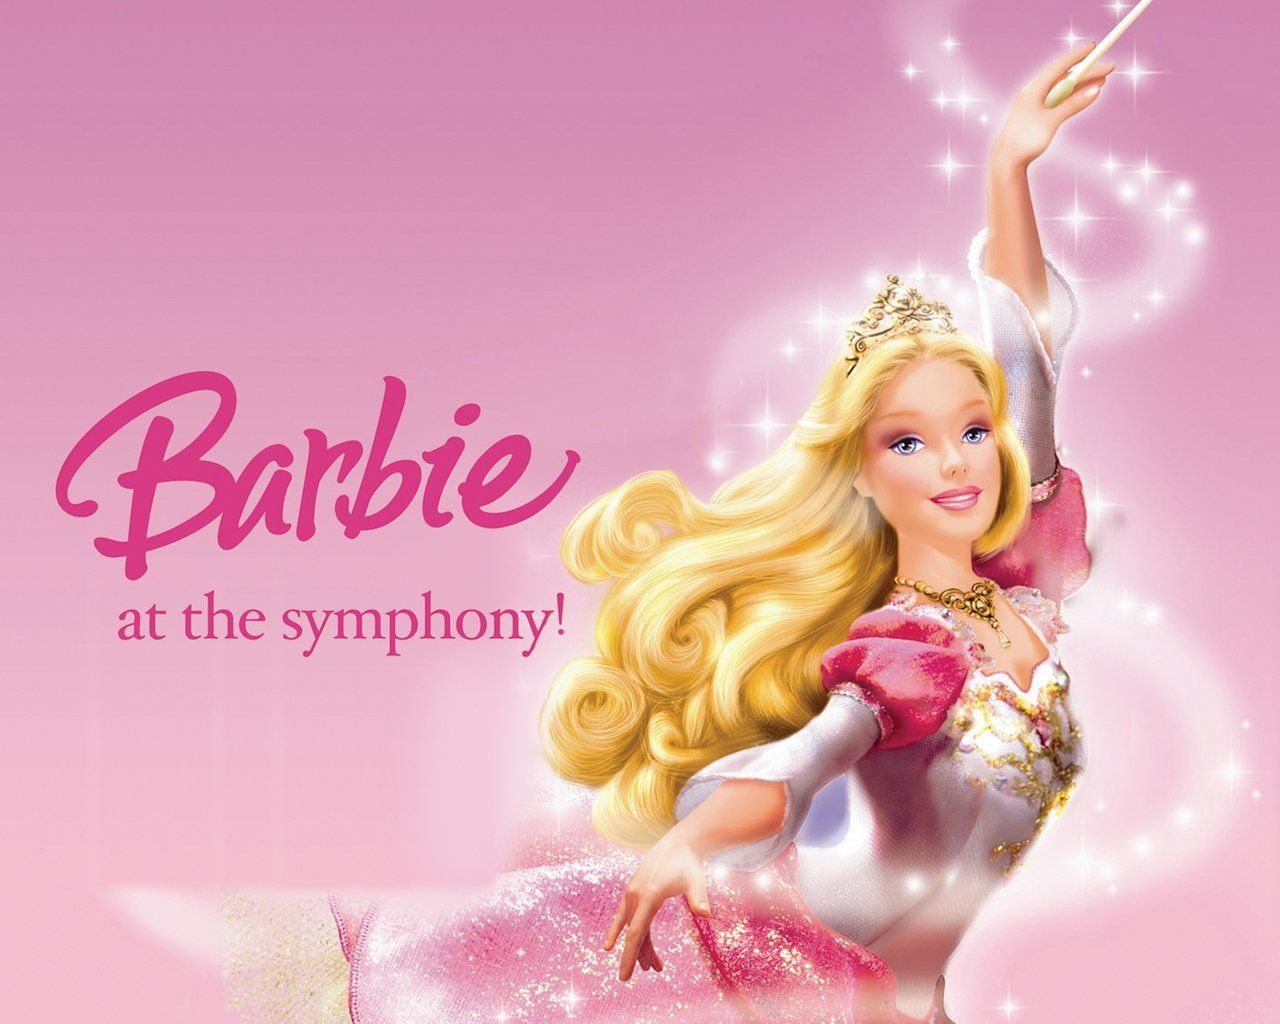 Barbie 12 Dancing Princesses Barbie Princess 31680966 1280 1024